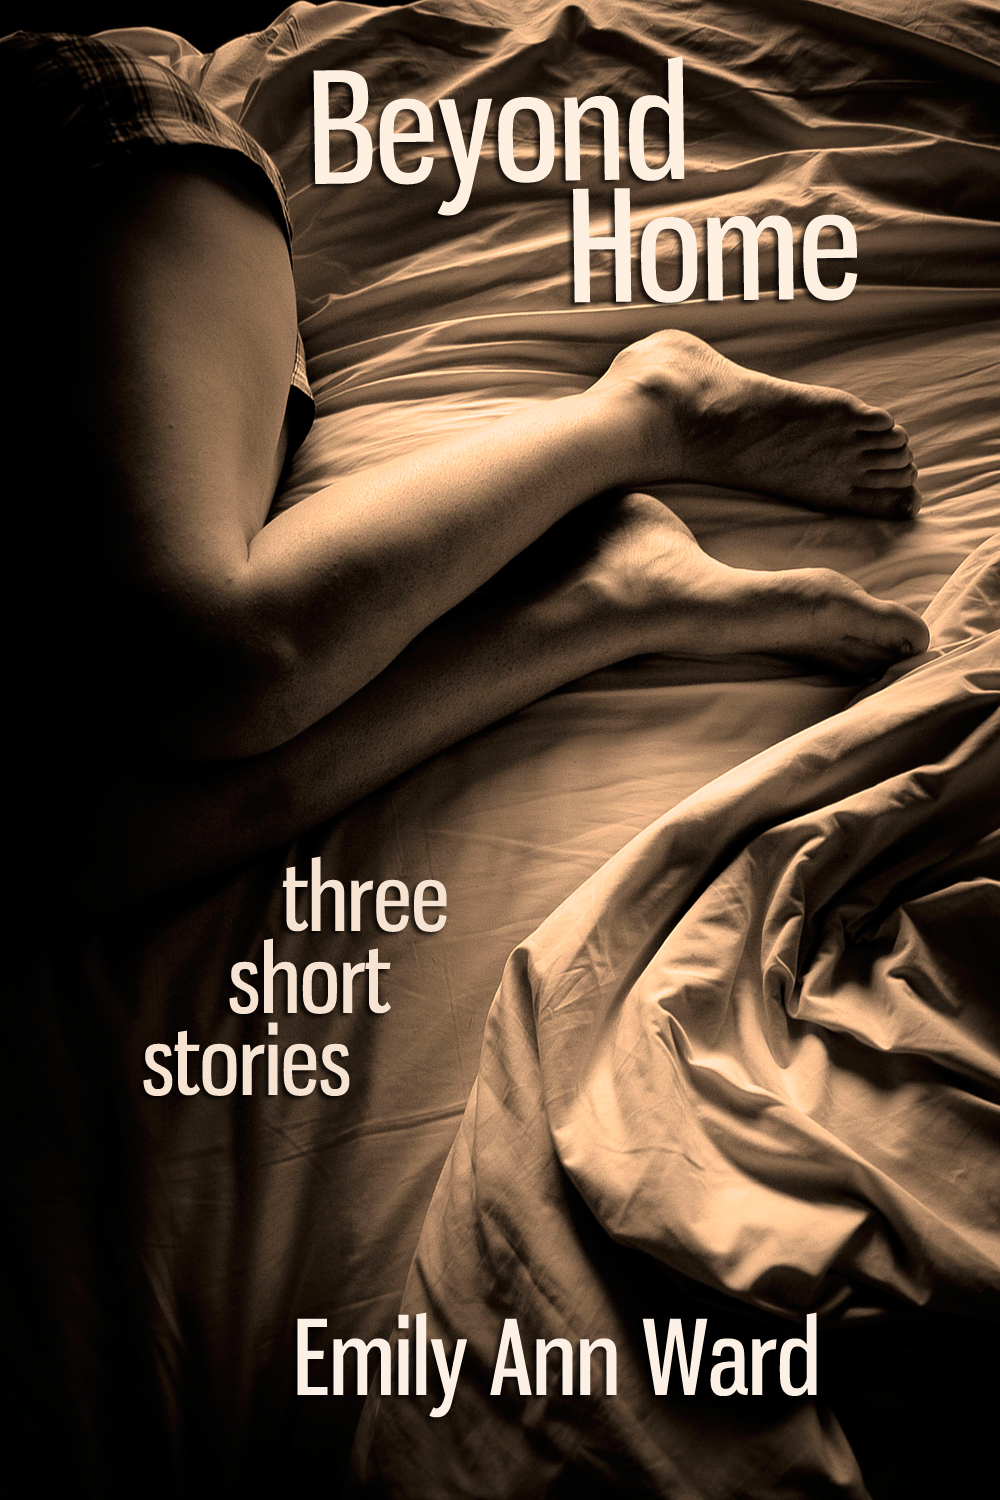 ... Fiona or Passages and my upcoming short story collection, Beyond Home.